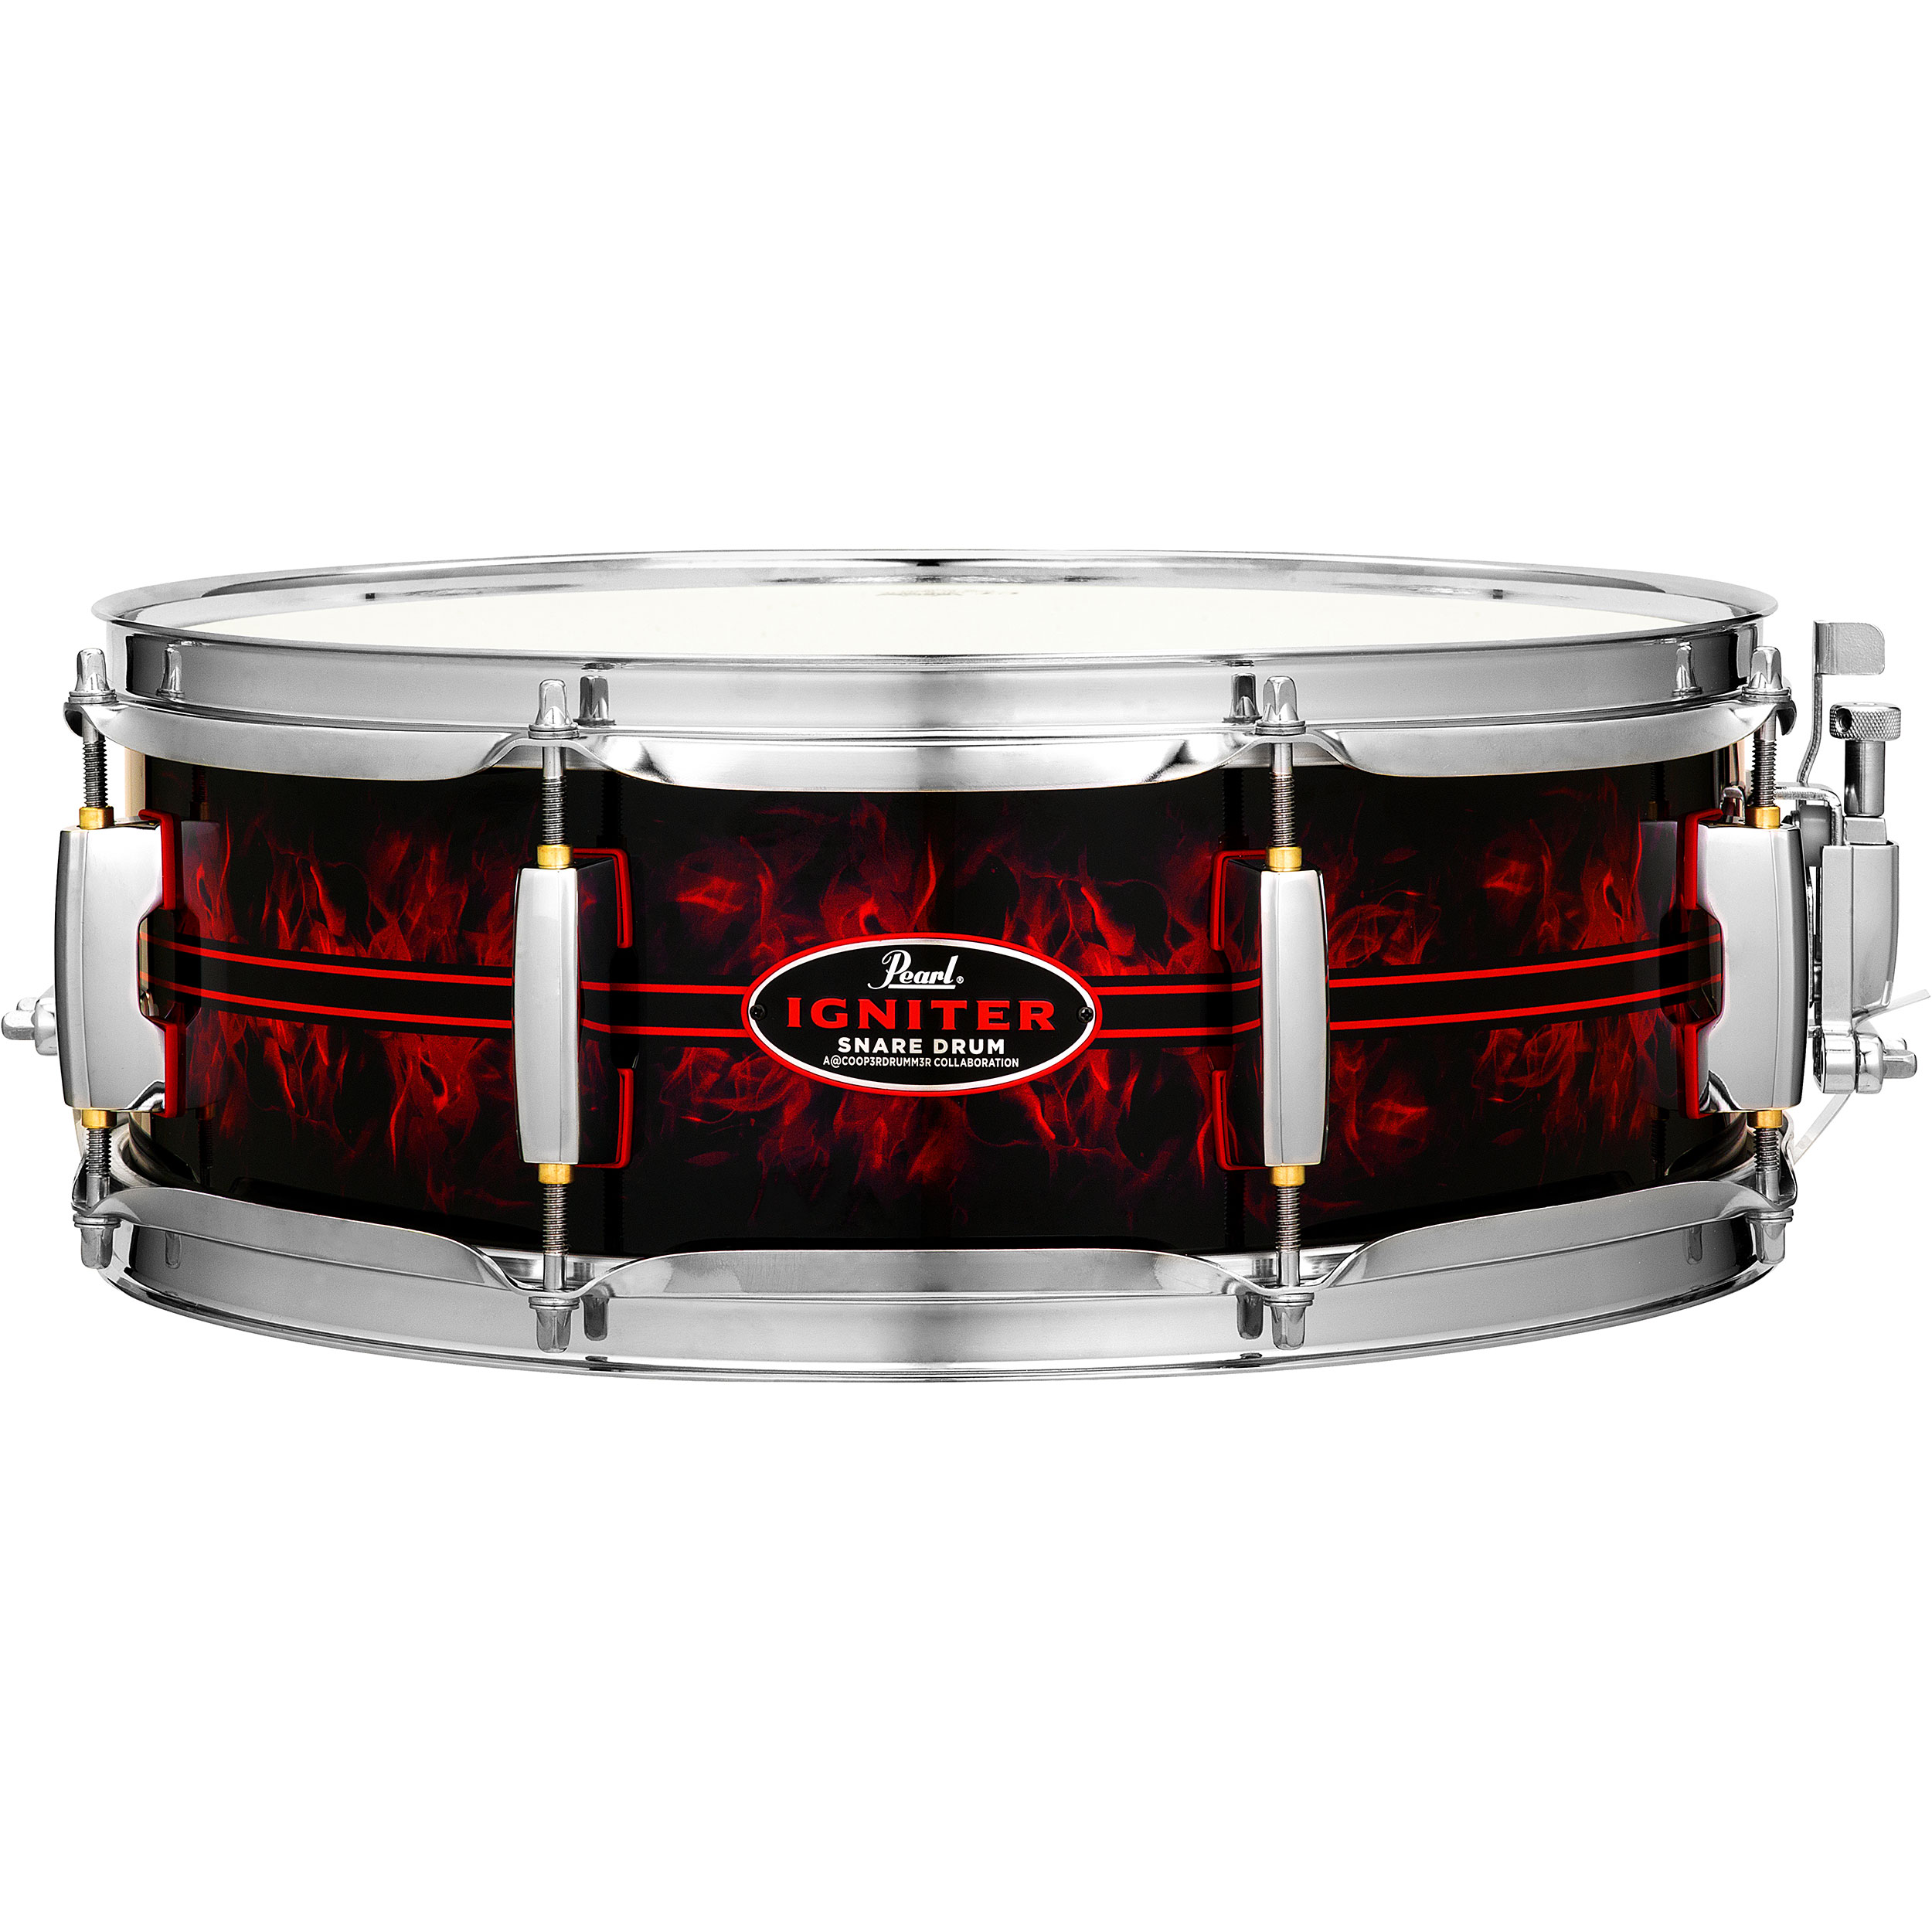 "Pearl 14"" x 5"" Igniter 6-Ply Poplar/Maple Snare Drum in Custom Pinstripe/Flame Graphic"